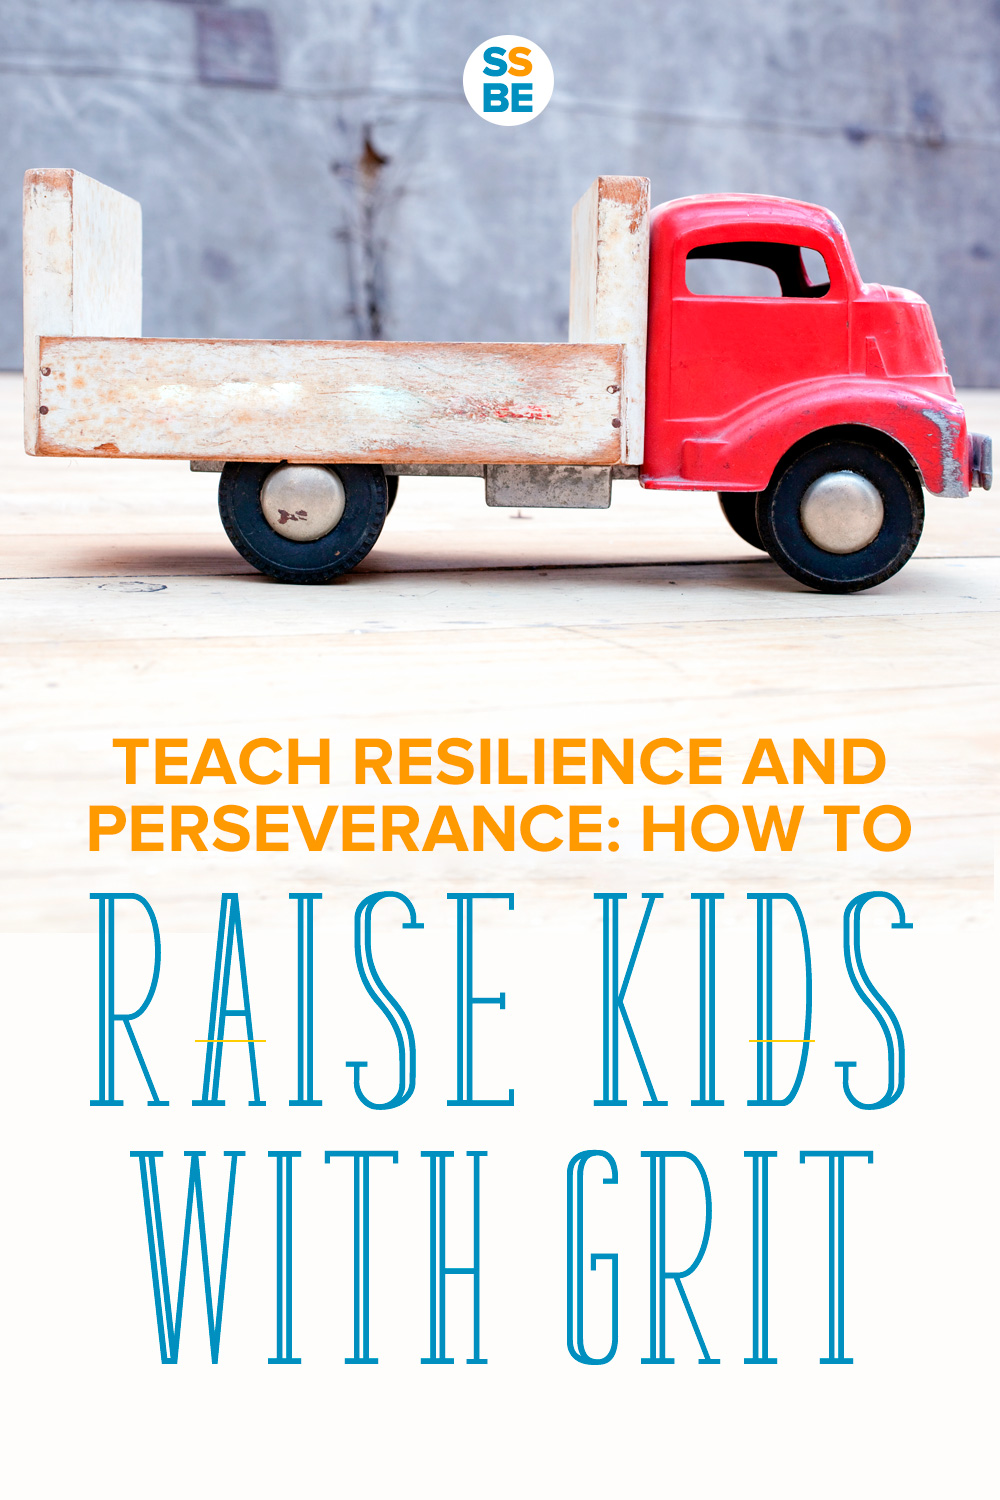 Grit helps children push on through. Find out how to raise kids with grit — and increase their chances for success by teaching resilience and perseverance.